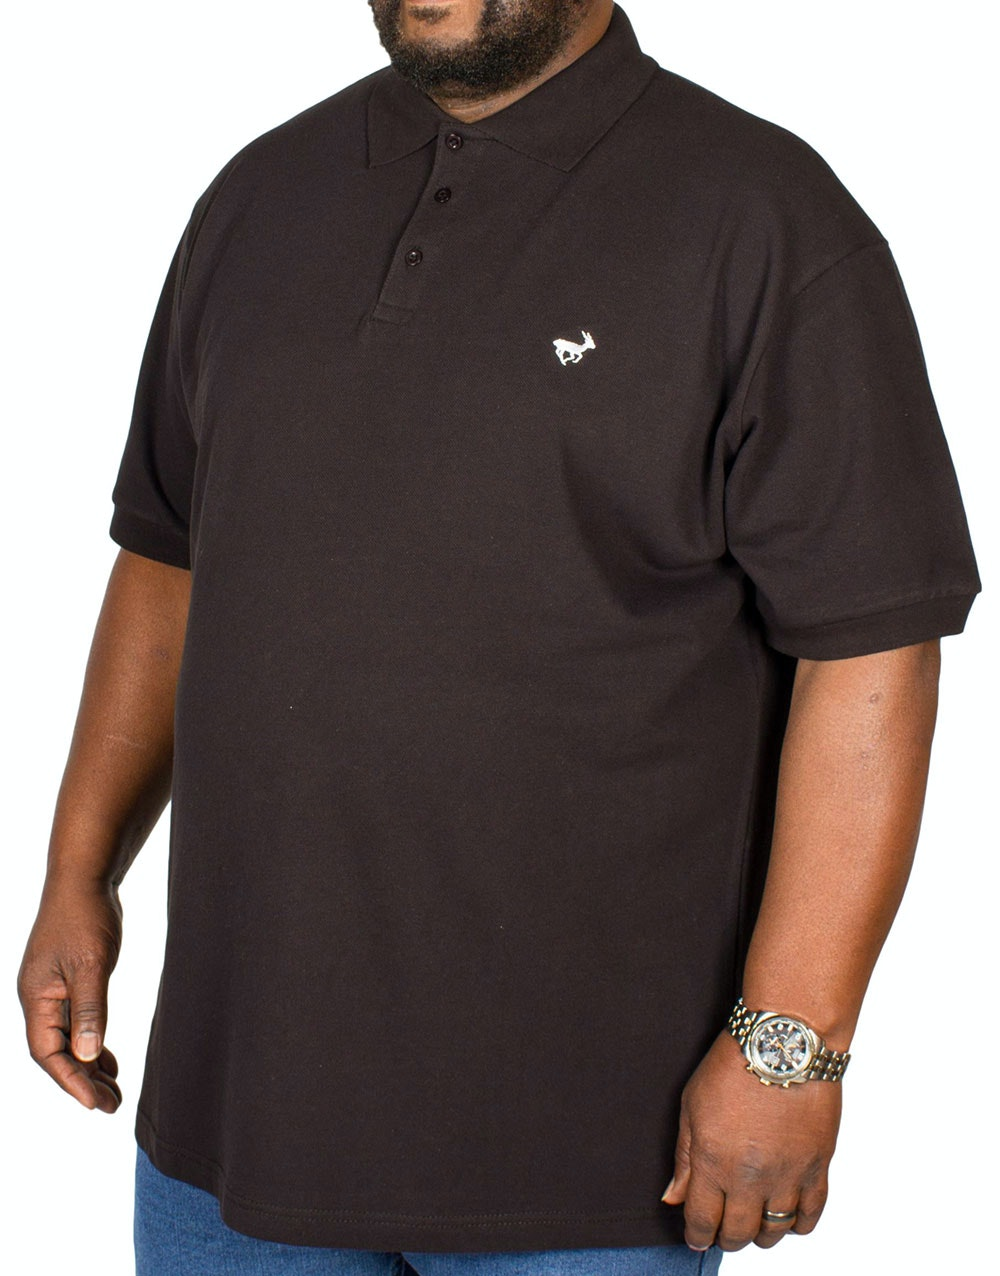 Bigdude Embroidered Polo Shirt Black